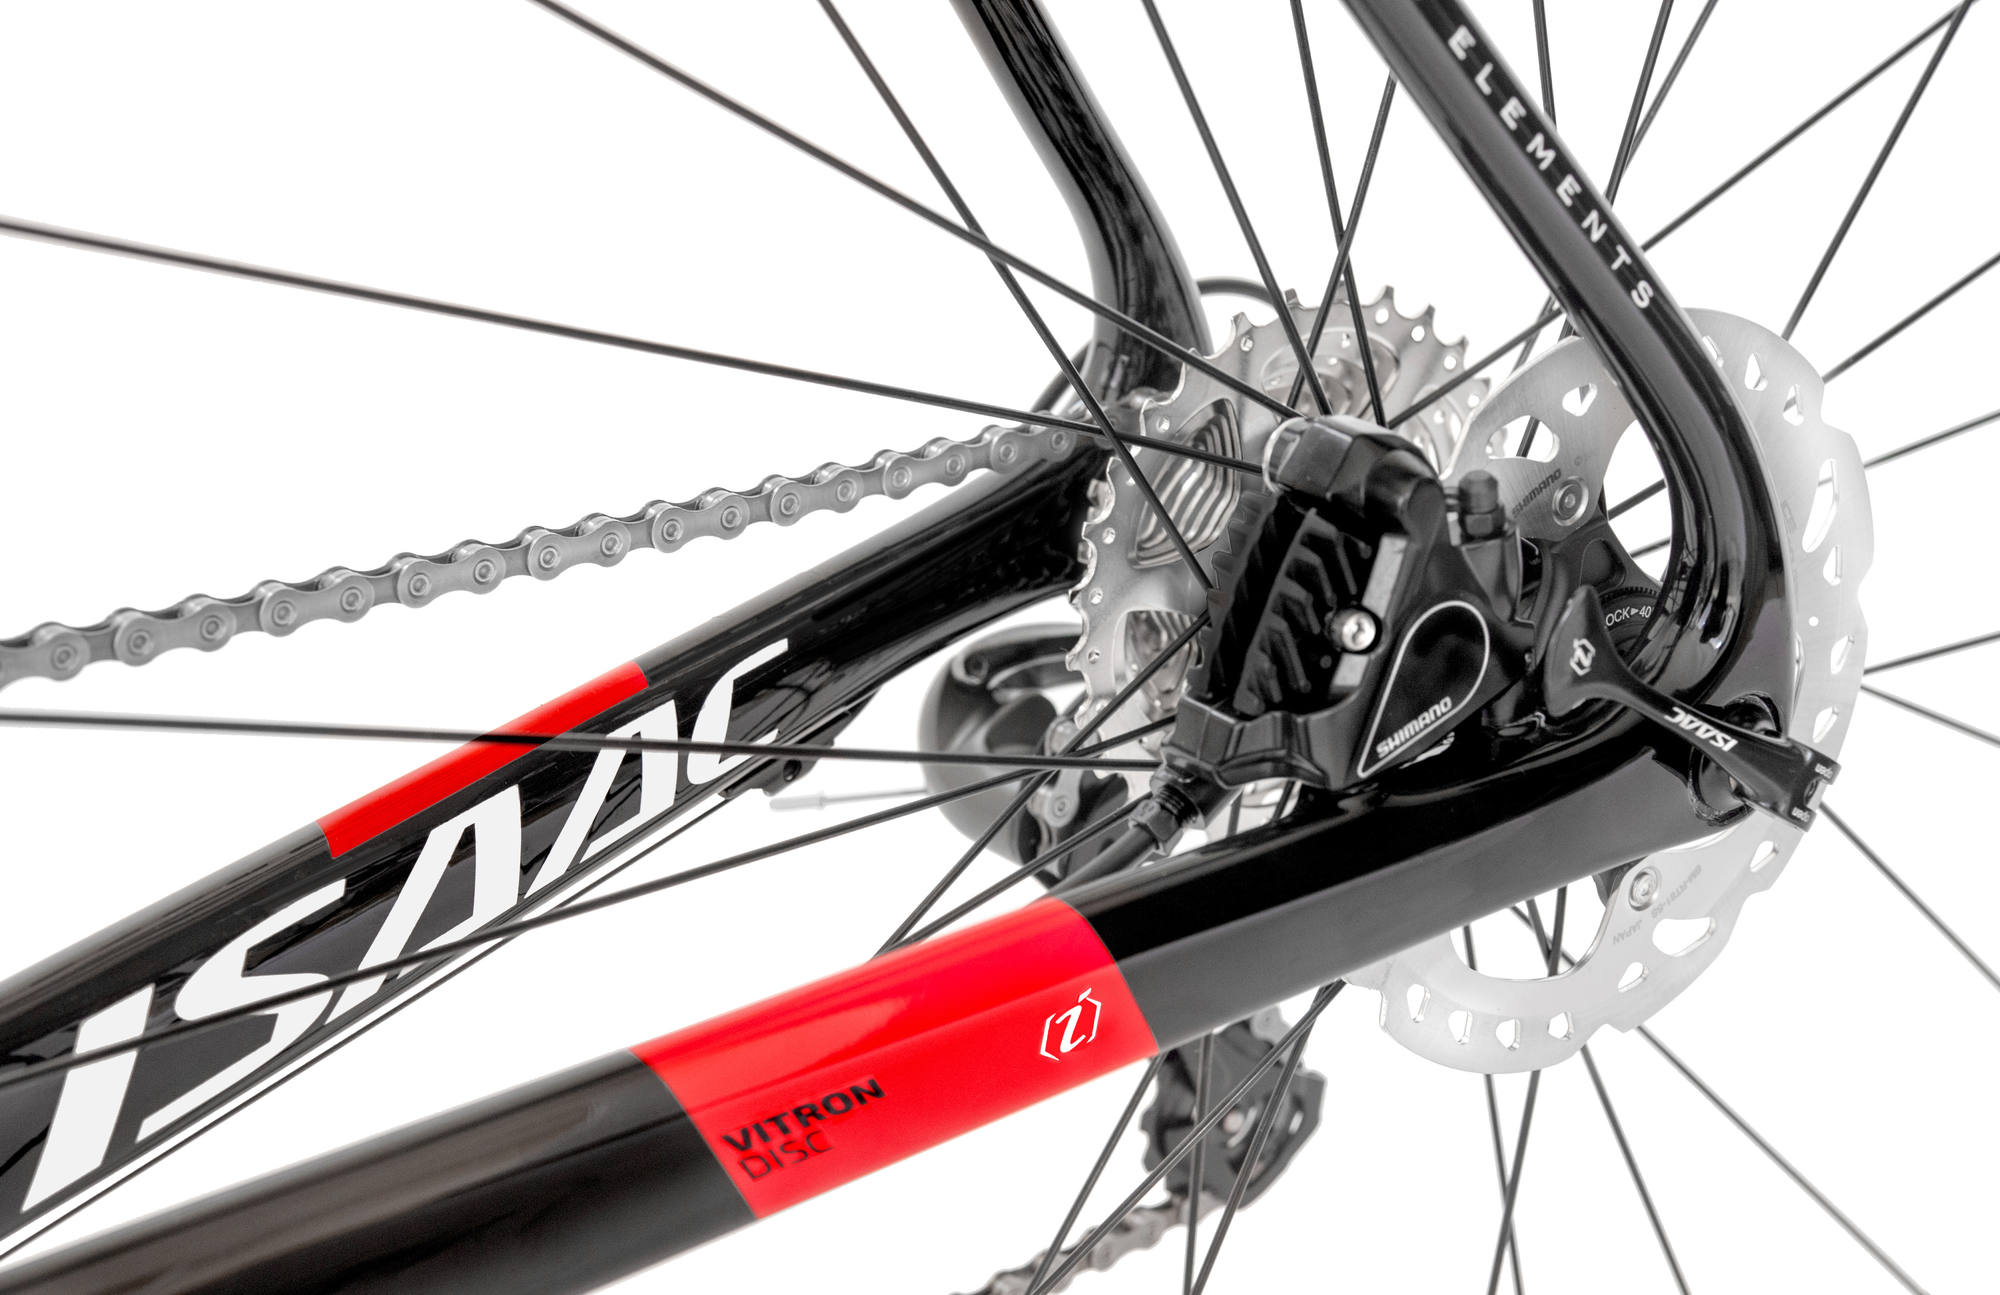 FIETS VITRON DISC | SRAM FORCE